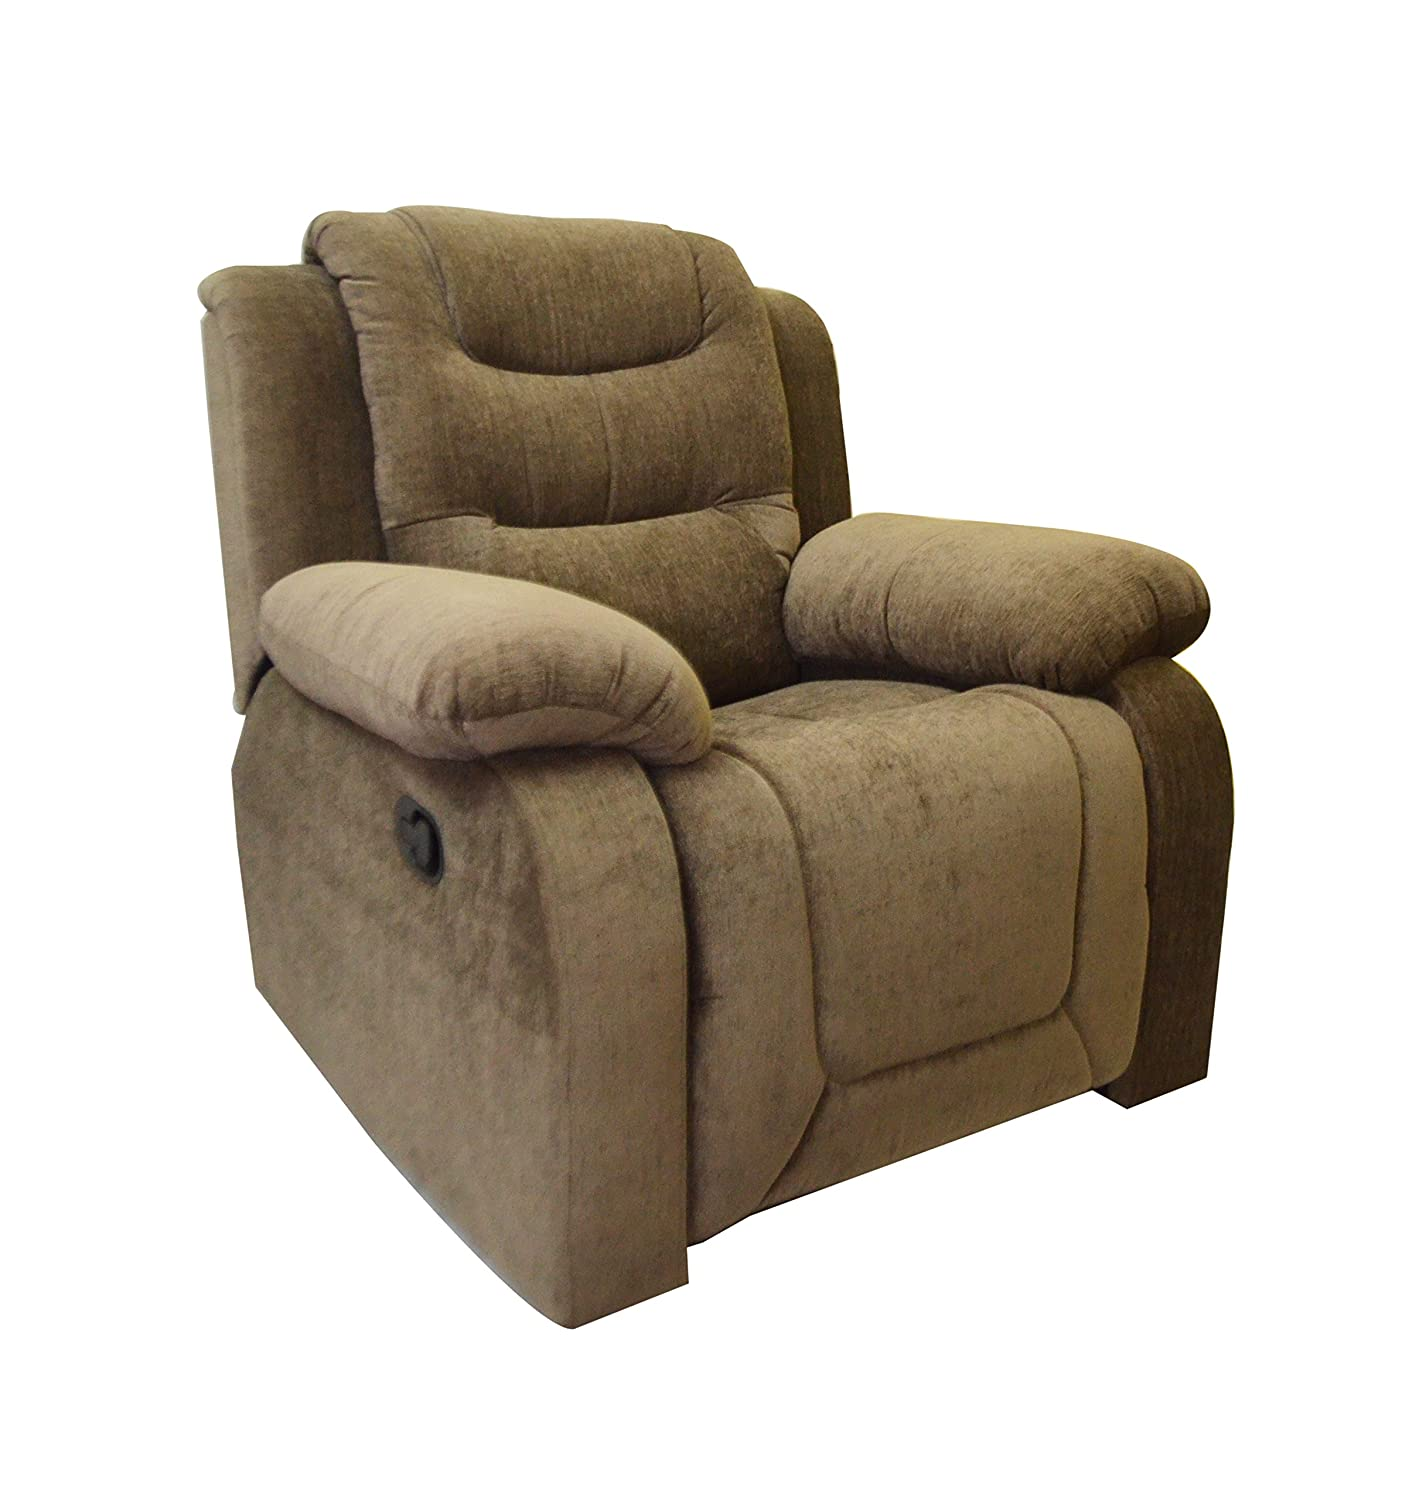 Recliners Buy Recliners line at Low Prices in India Amazon